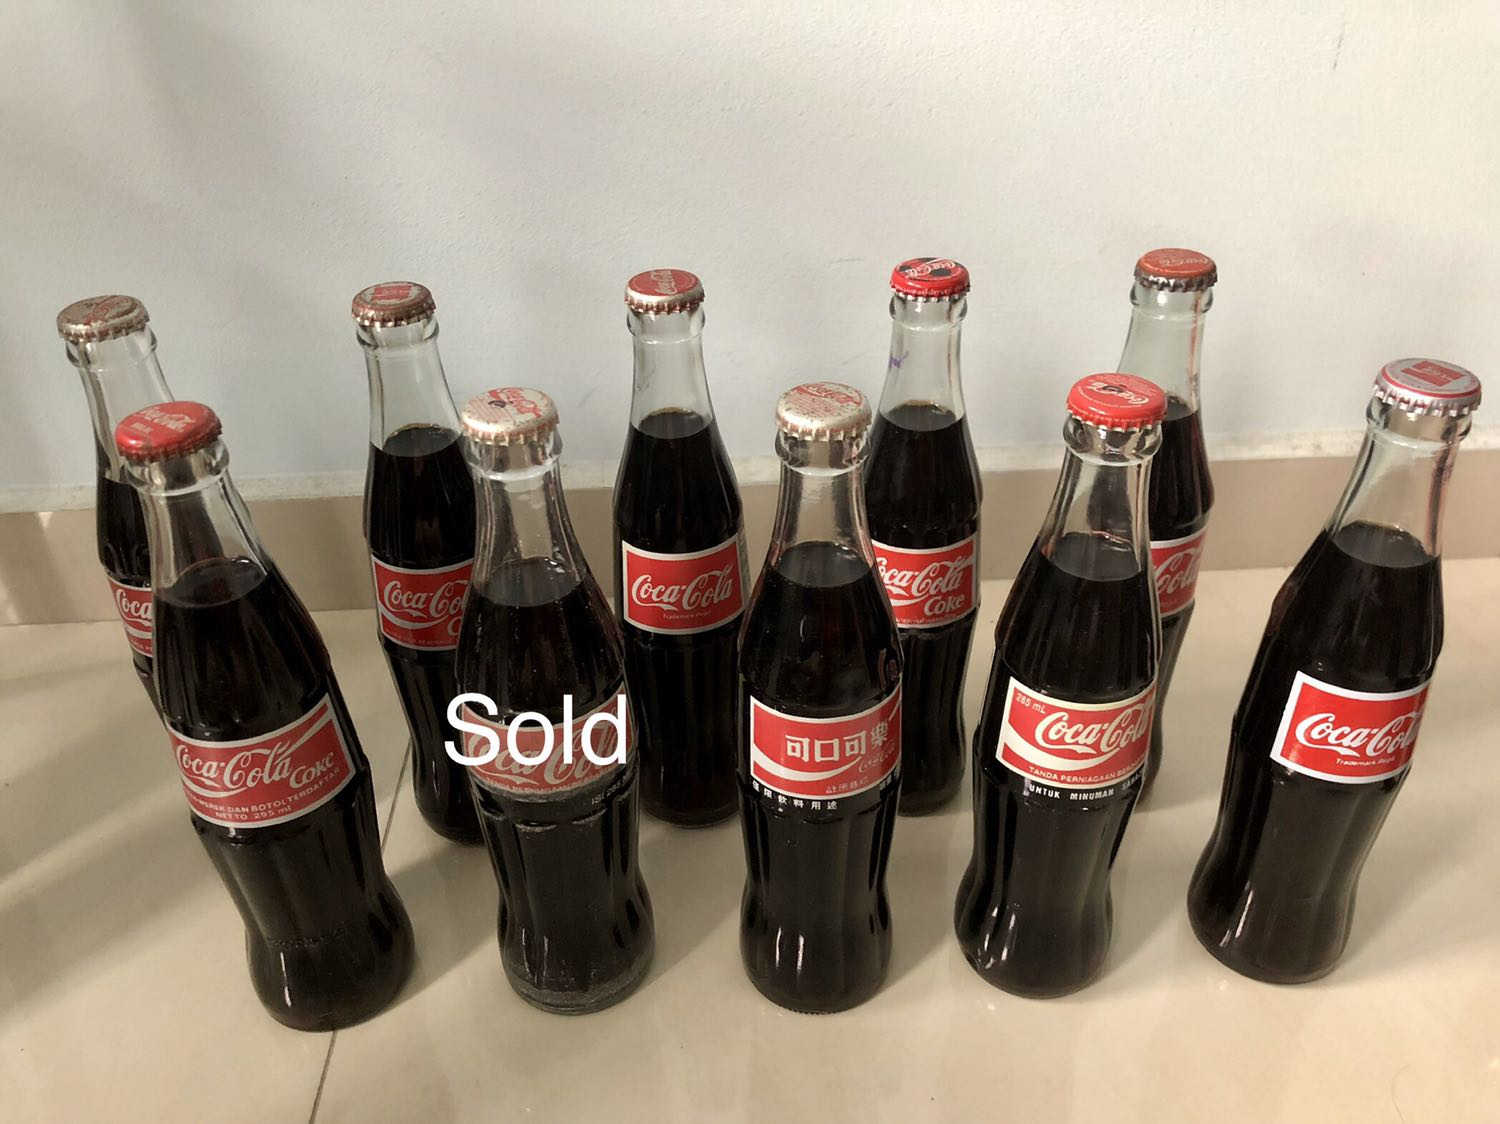 Coca Cola bottles (normal size)